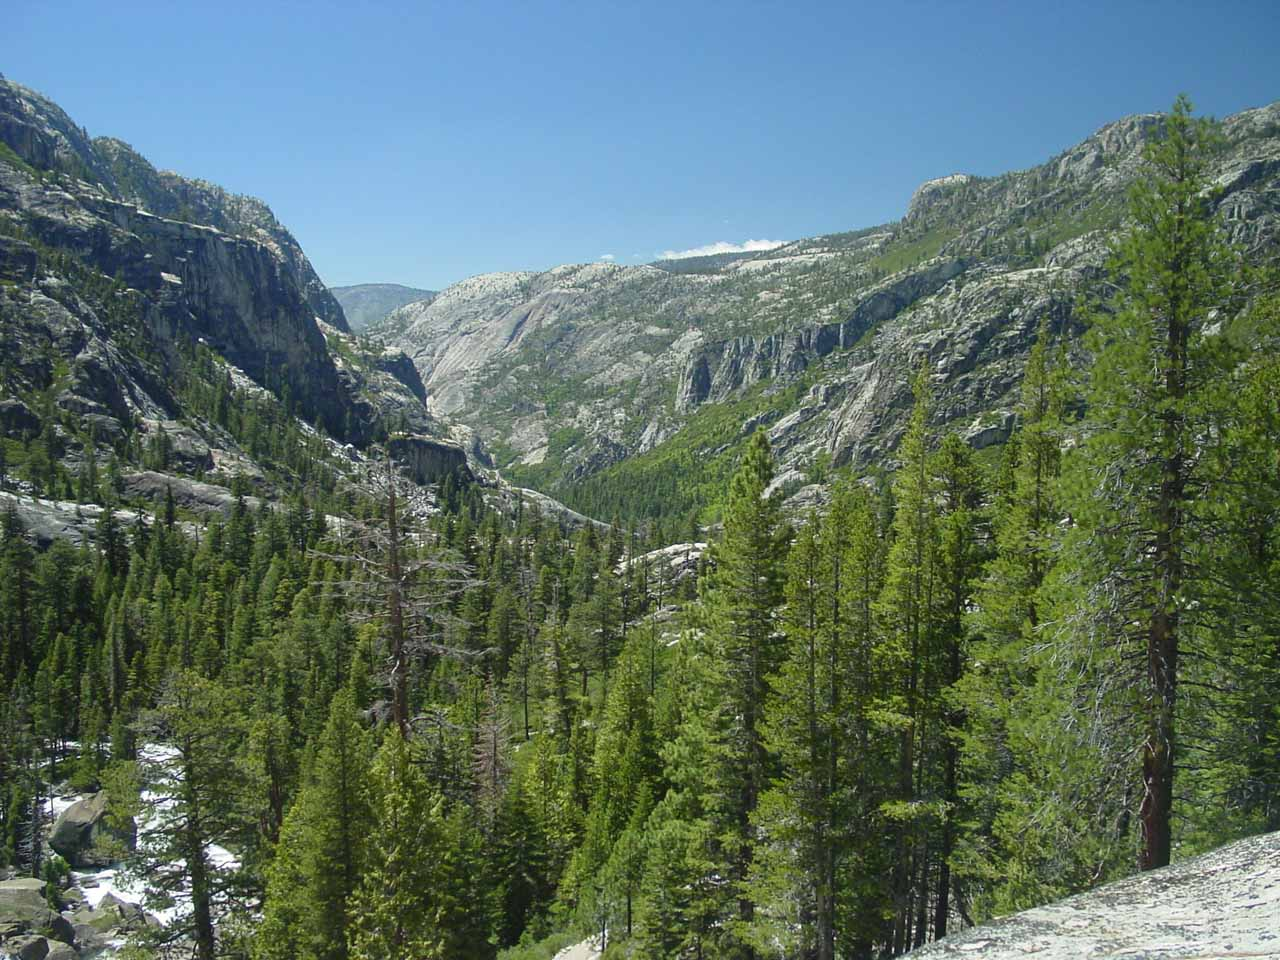 Looking downstream towards the Grand Canyon of the Tuolumne River